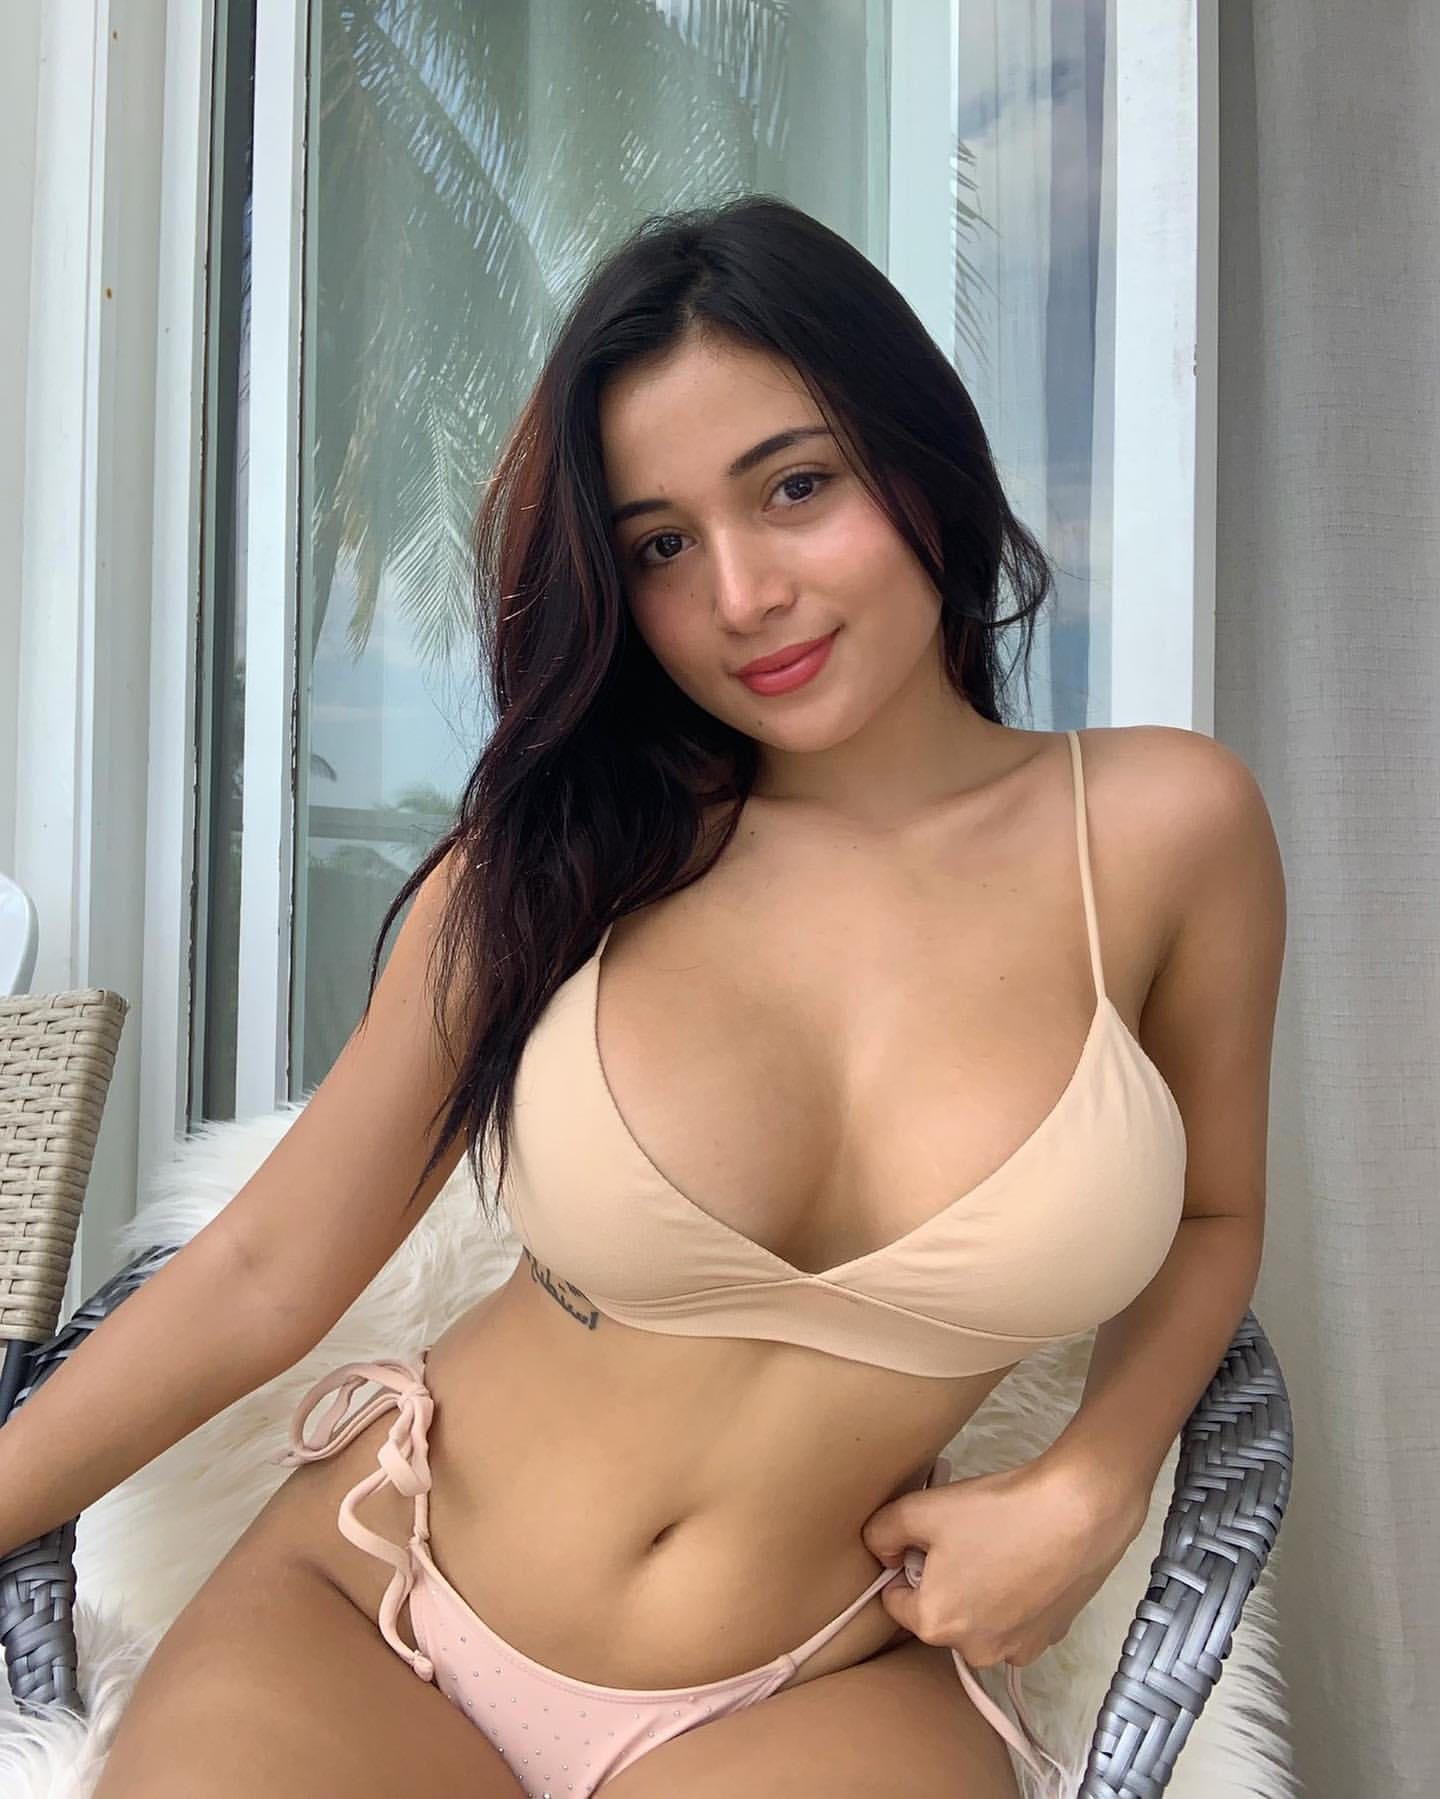 Low Rate Call Girls In Malviya Nagar 8826158885 Women Seeking Men